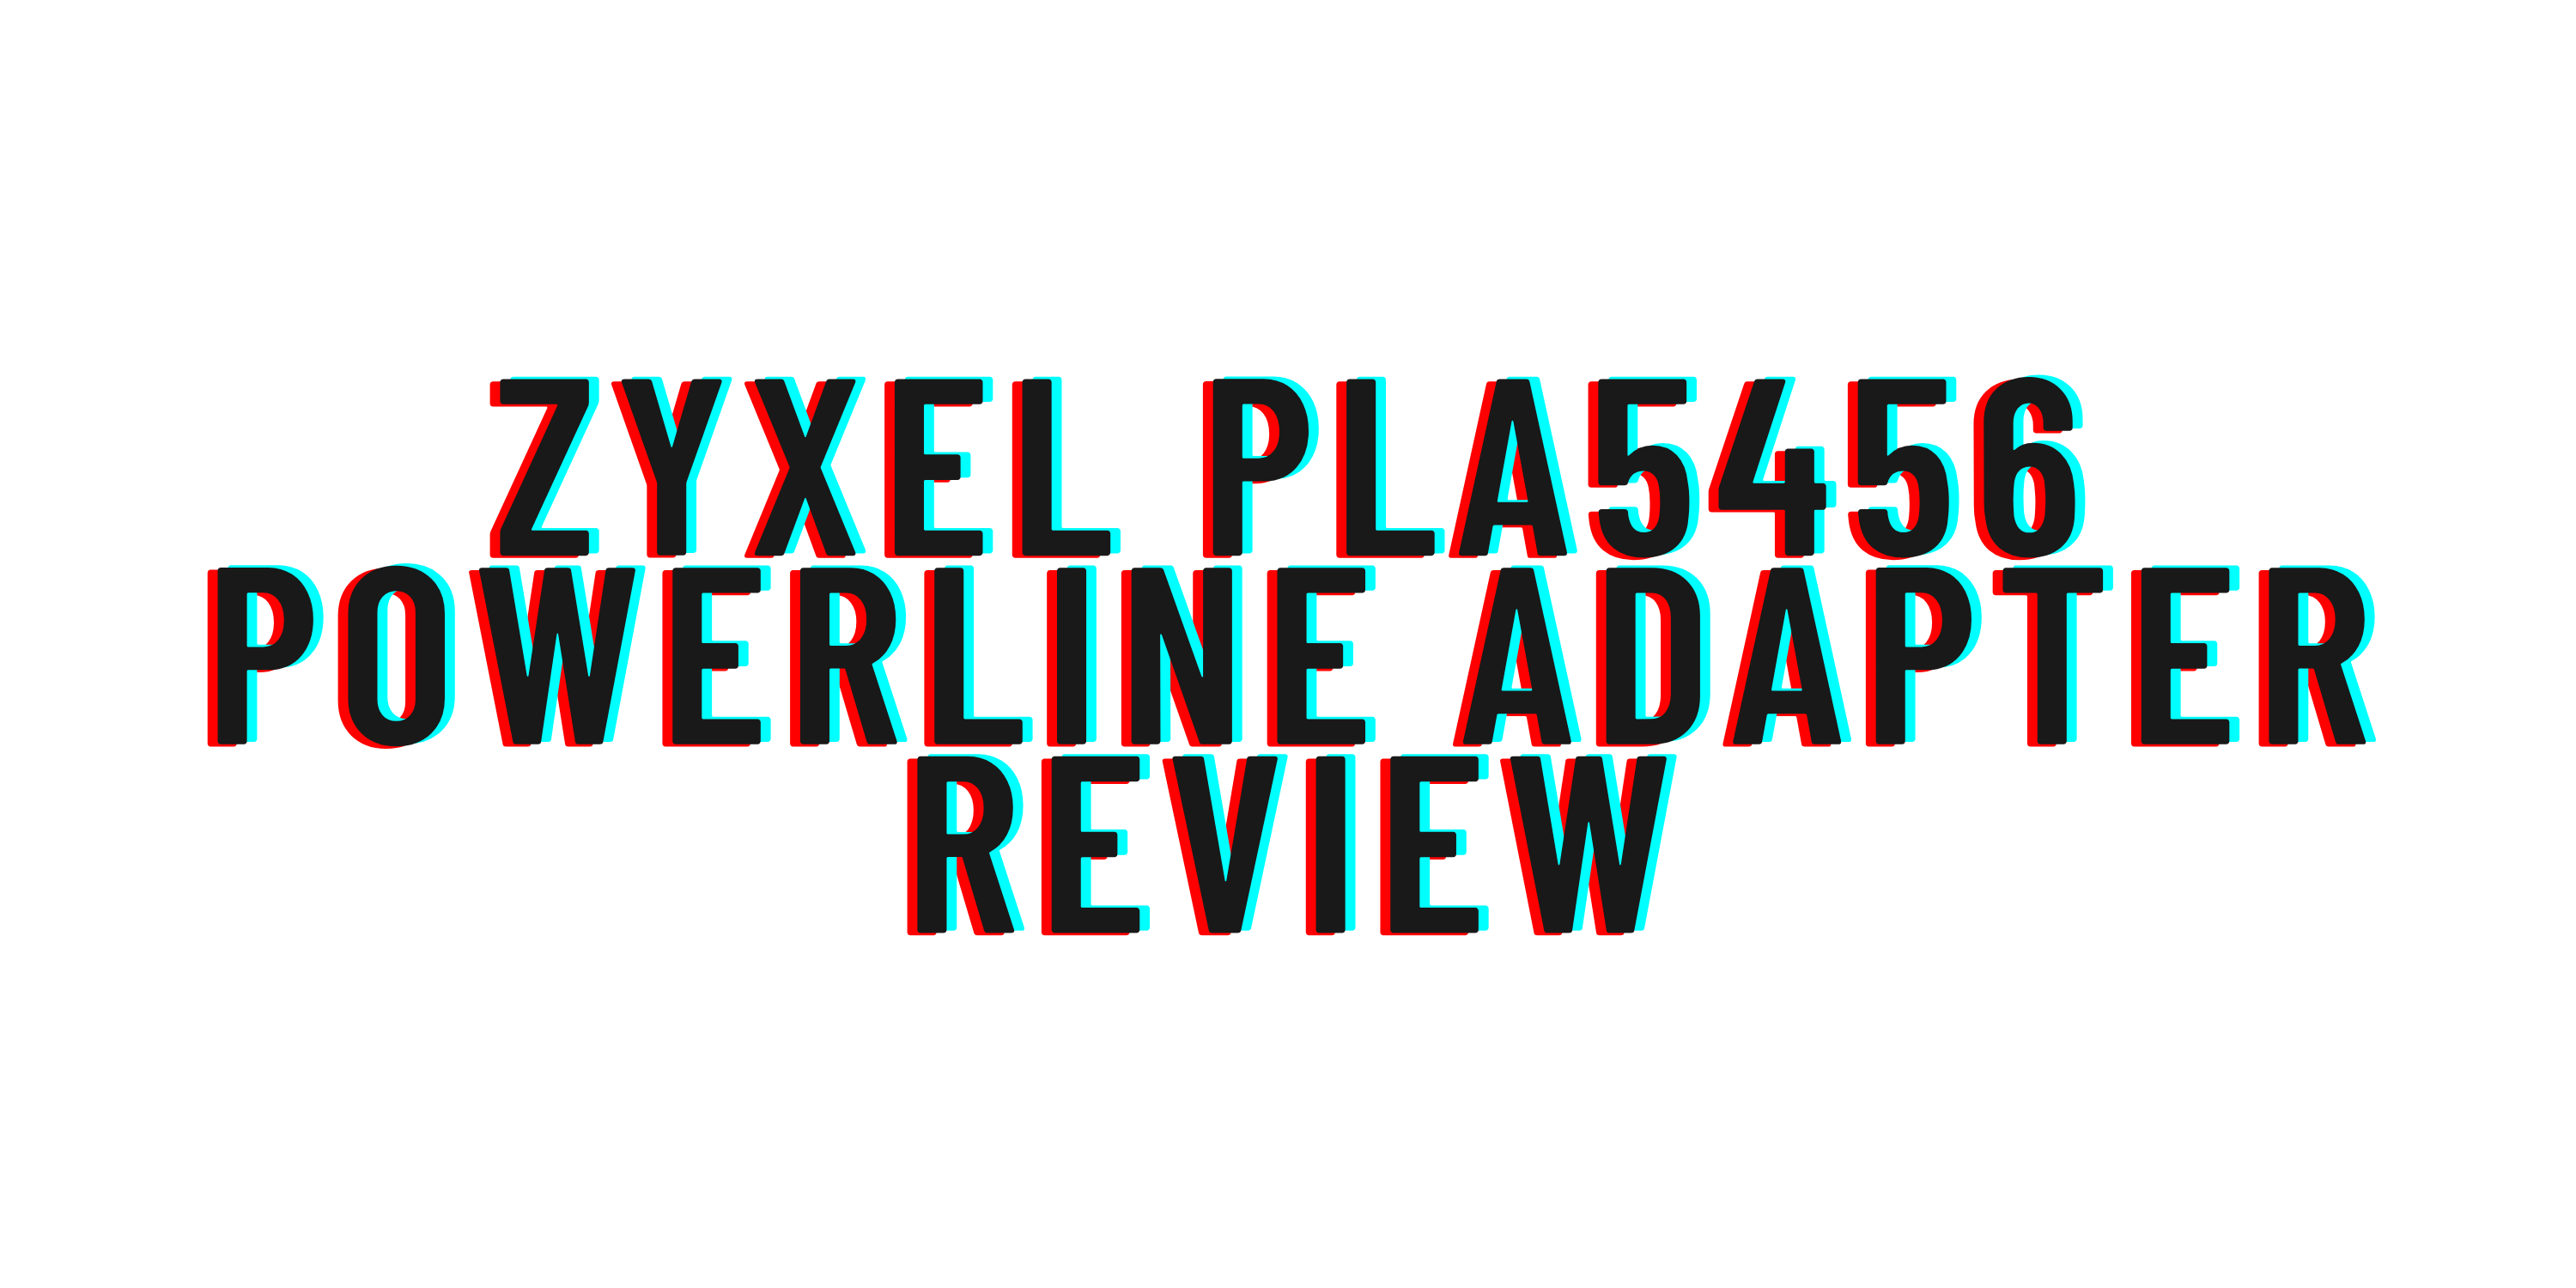 ZyXEL PLA5456 Powerline adapter review